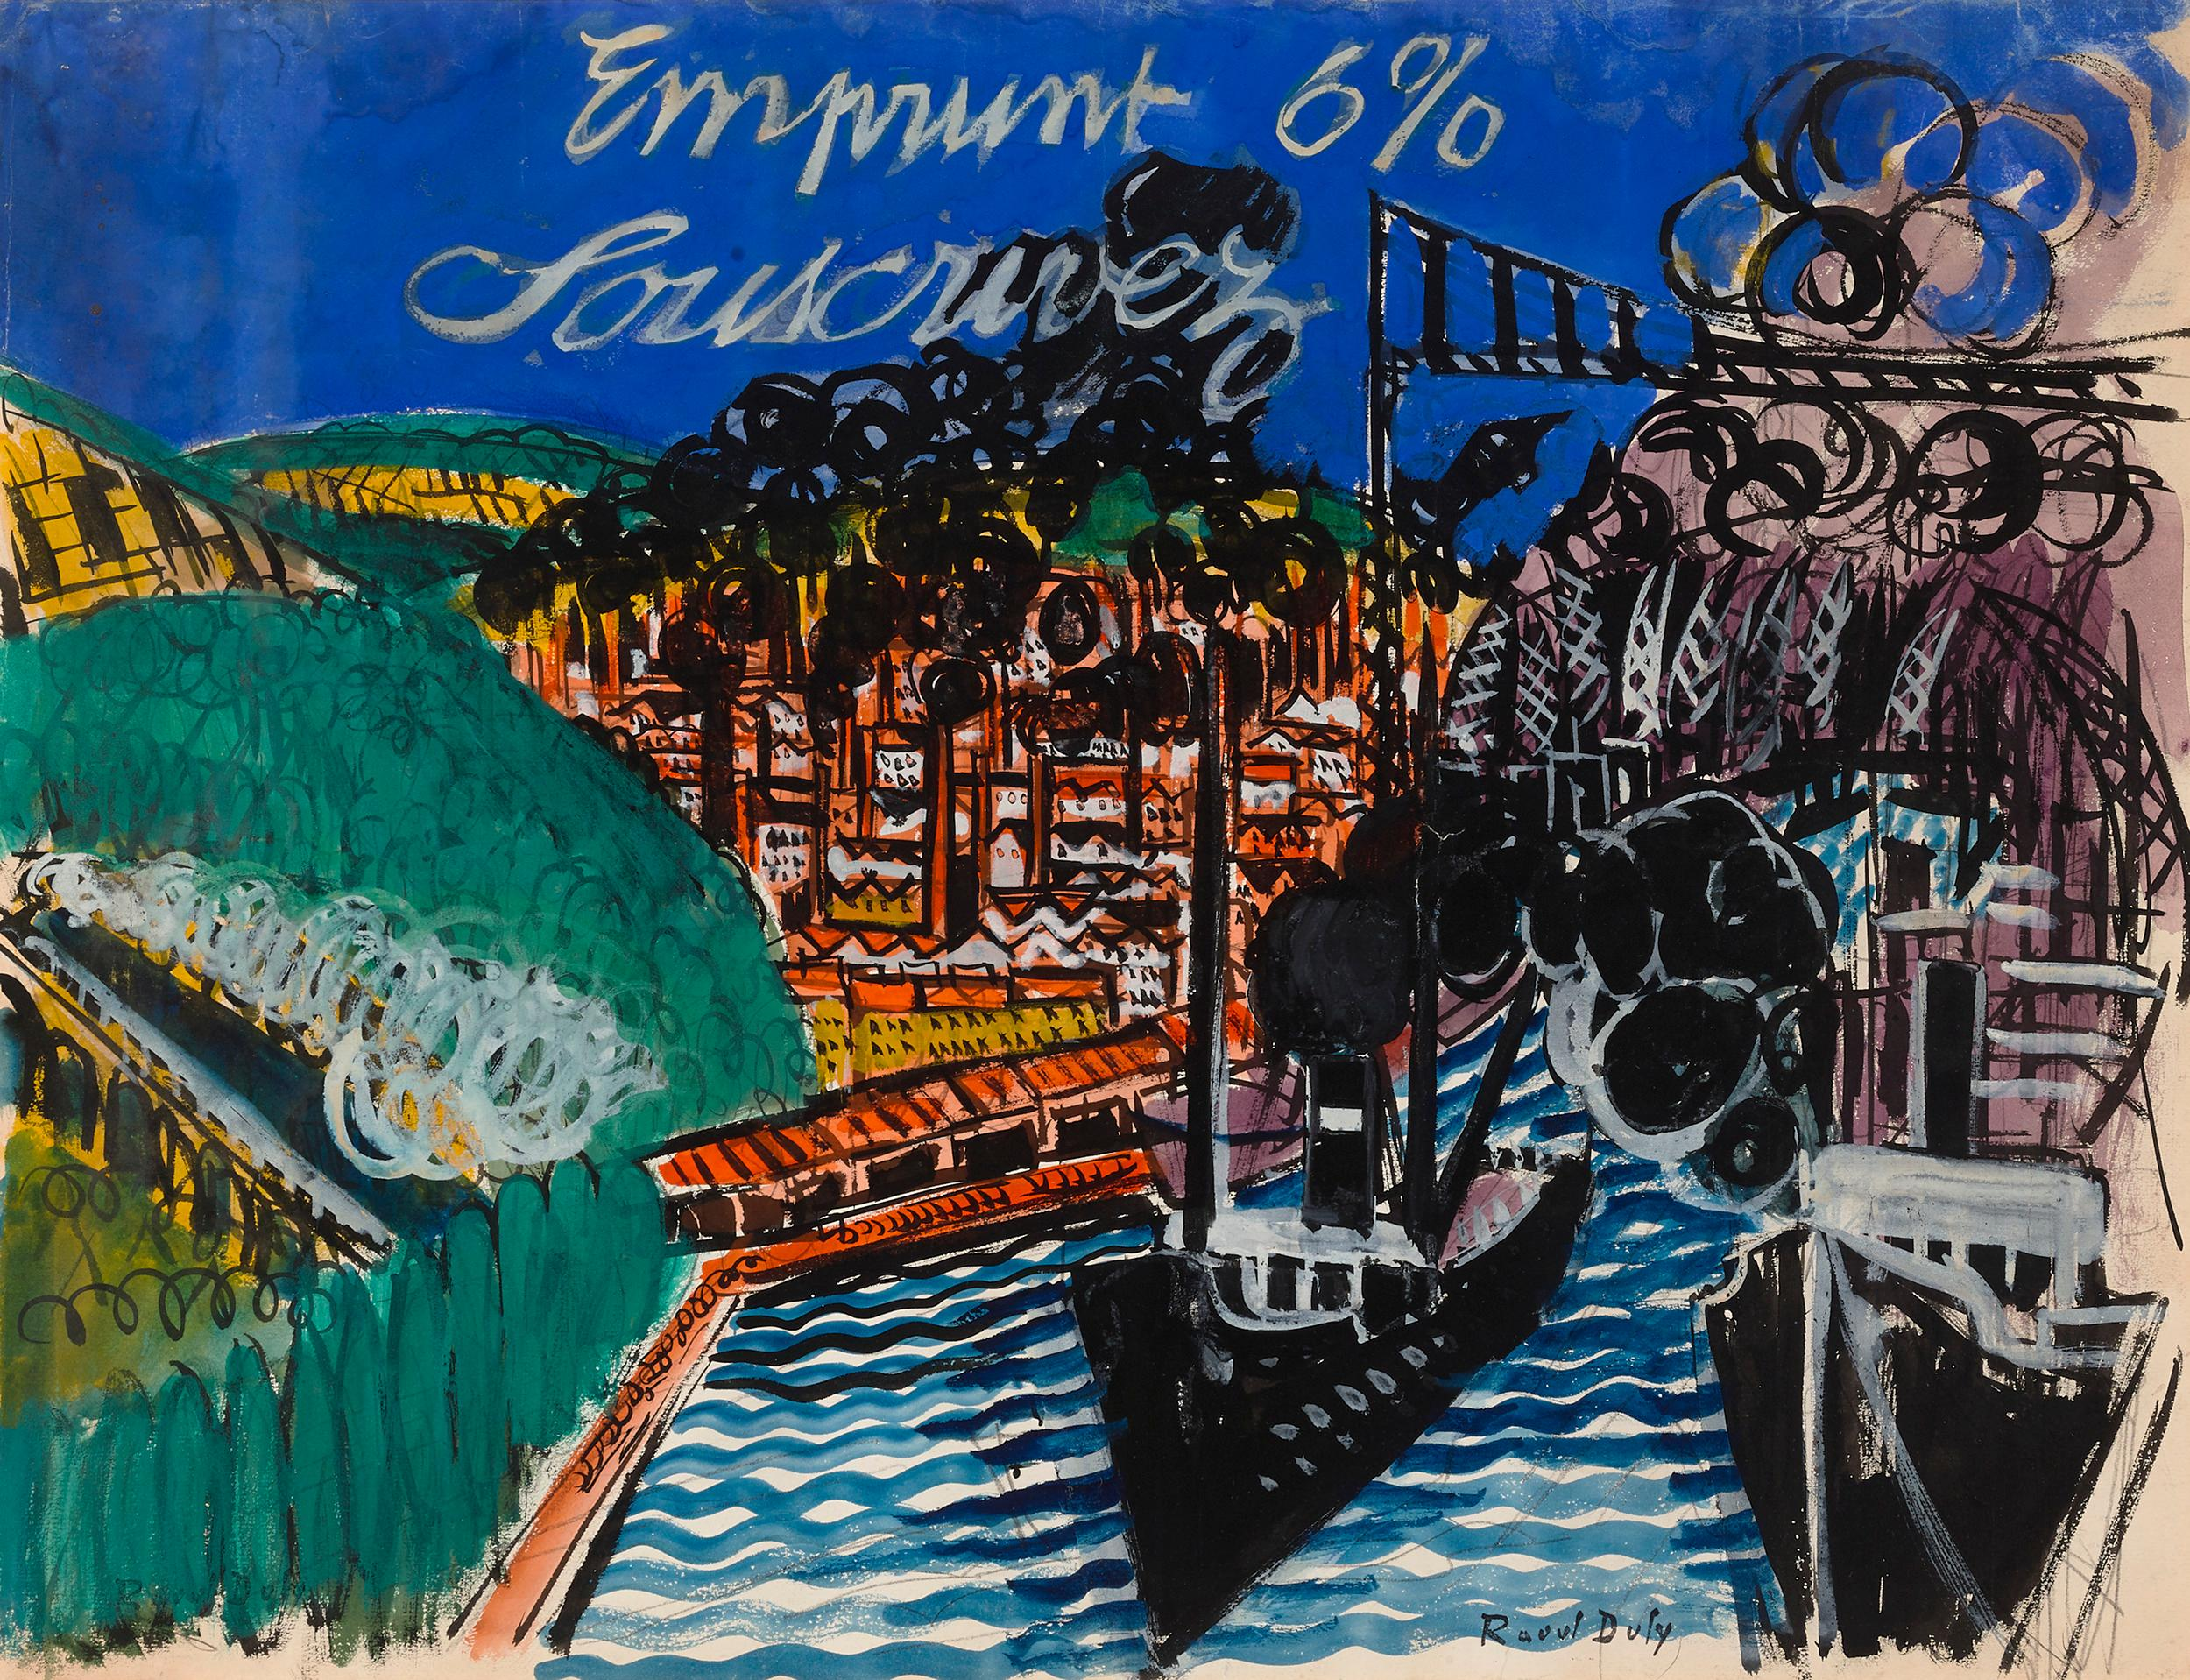 Emprunt 6% Souscrivez (War Loan 6% Subscribe) by Raoul Dufy